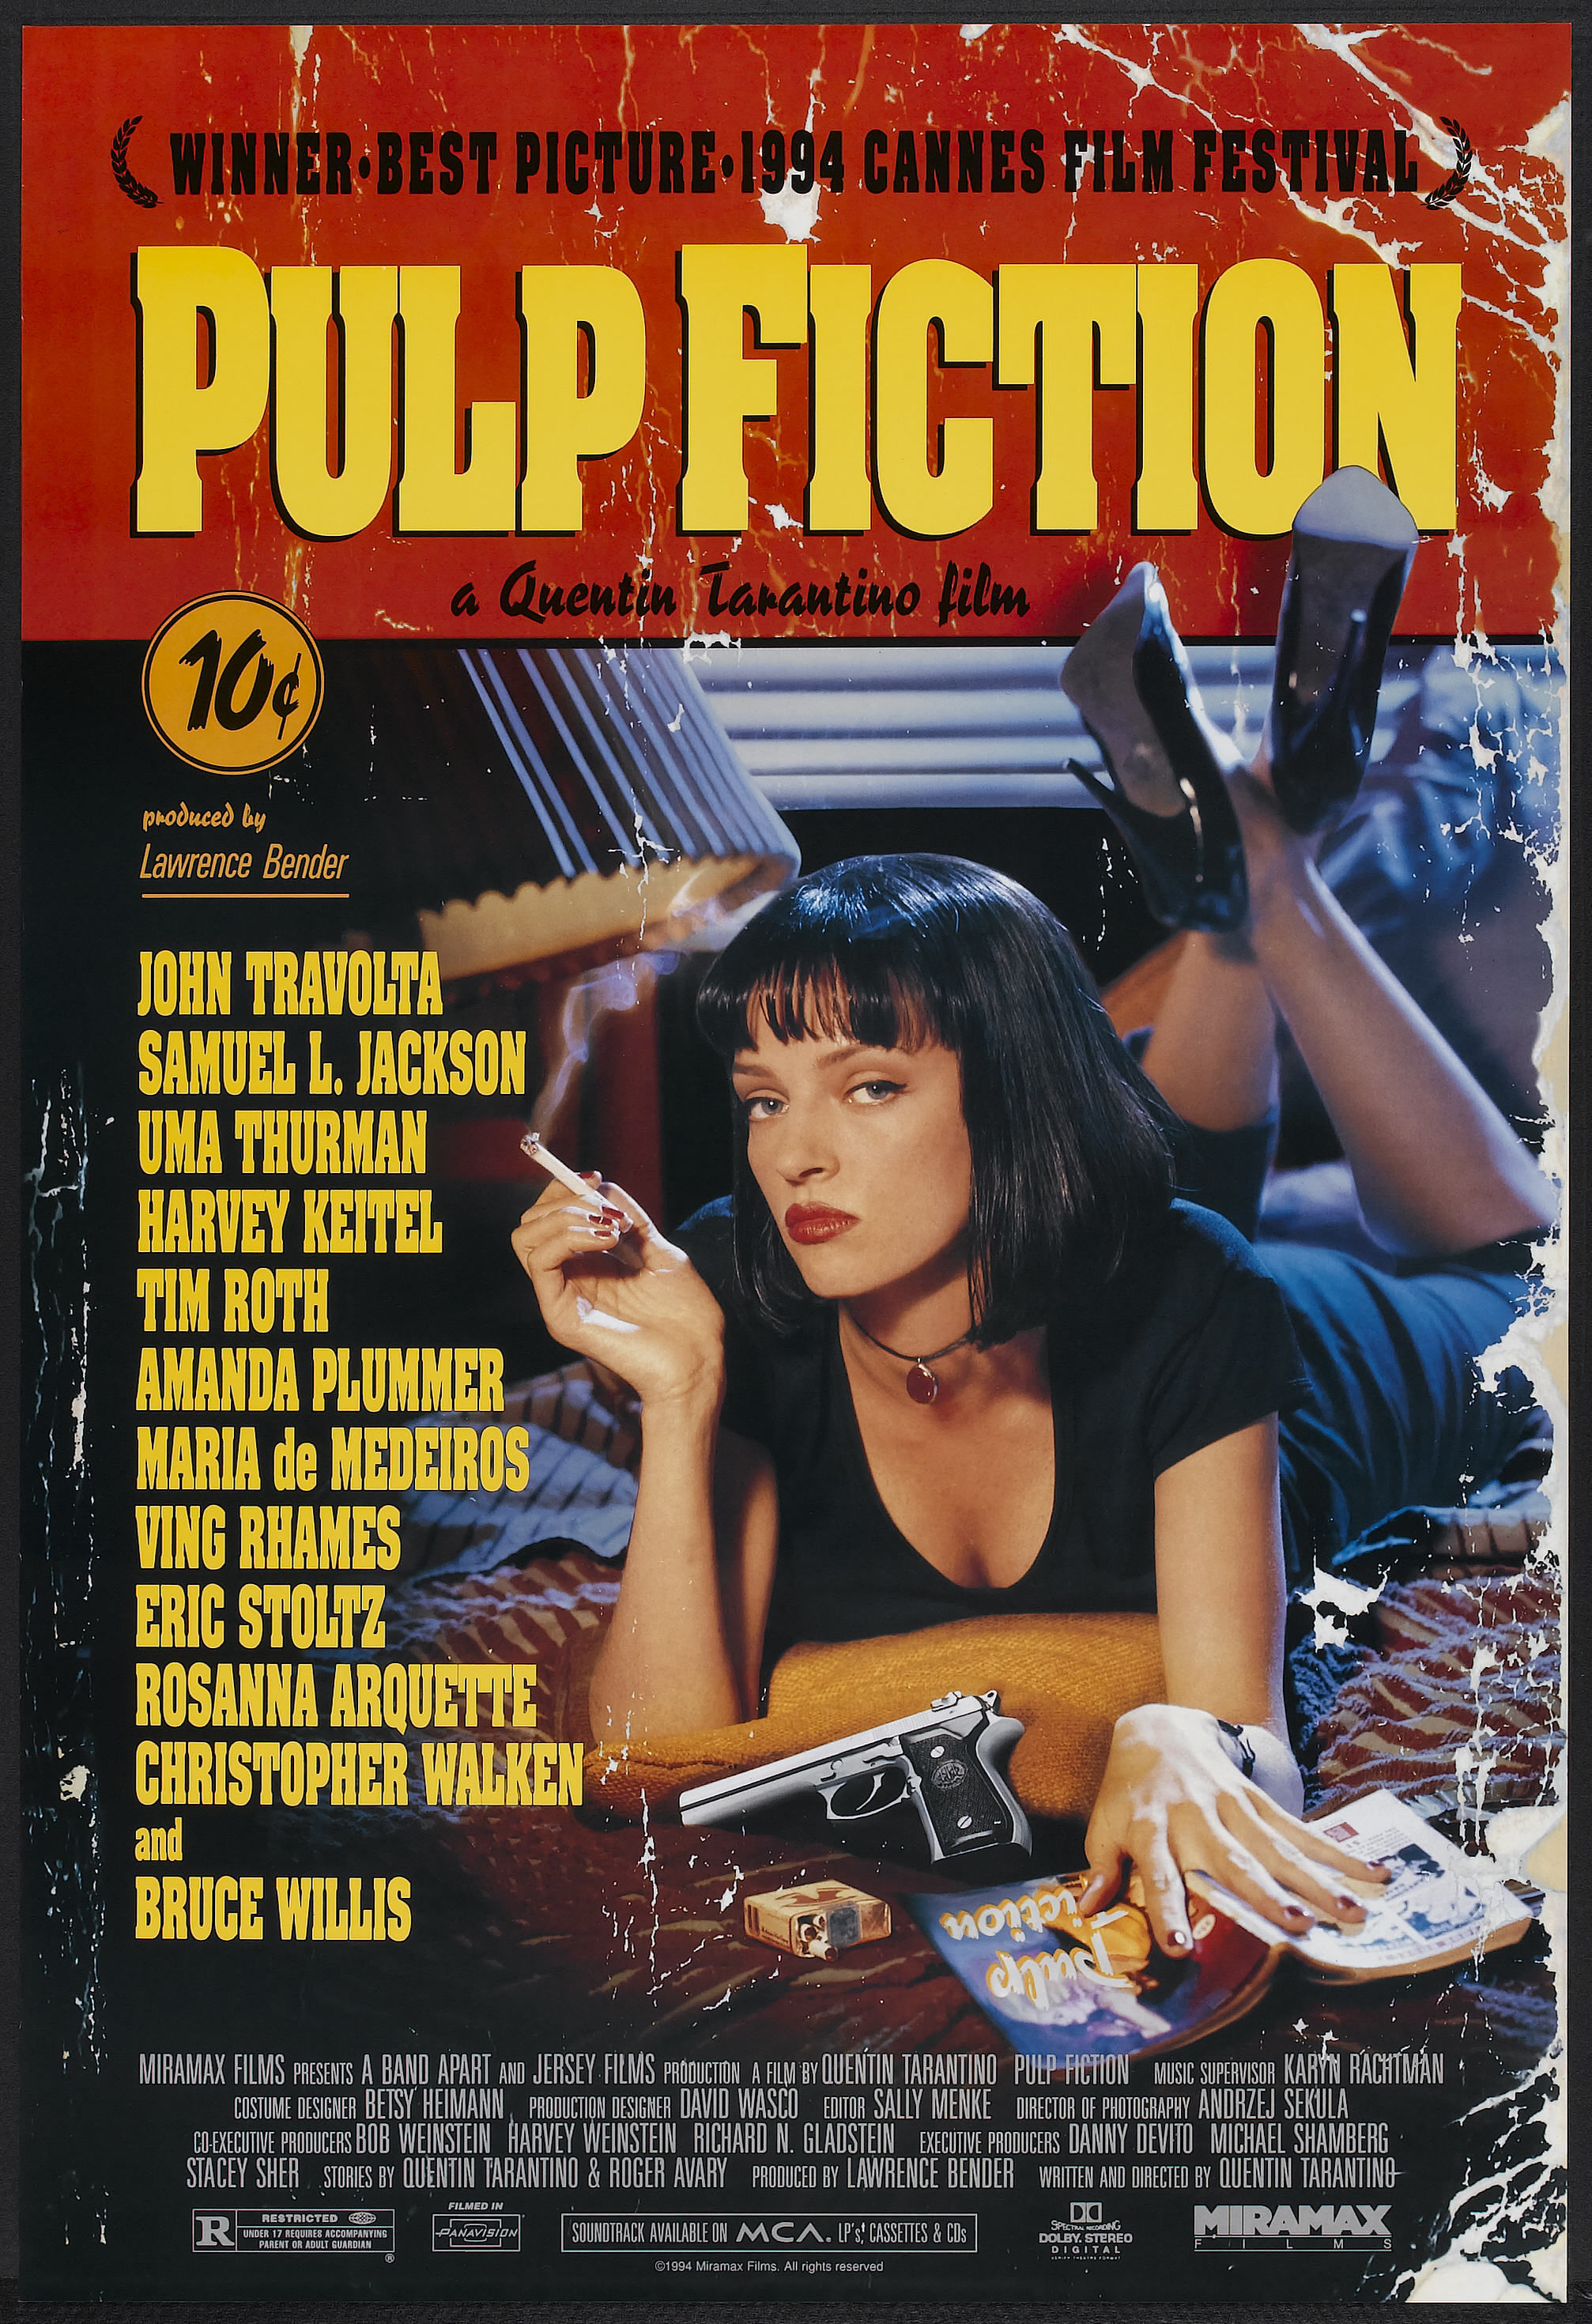 Pulp Fiction -- Quentin Tarantino